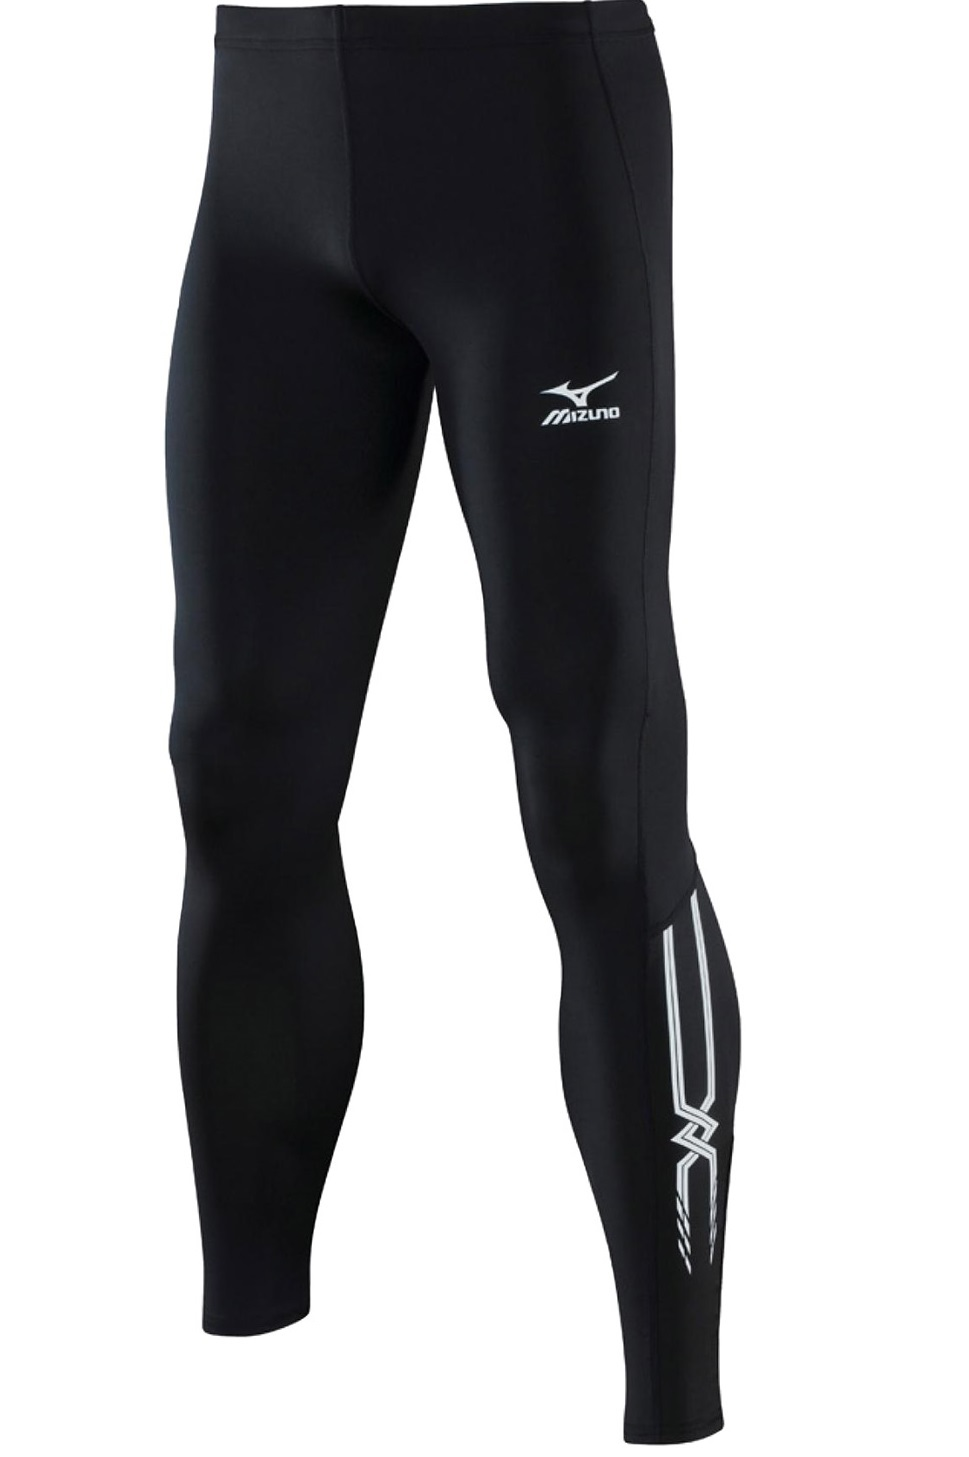 Тайтсы для бега Mizuno Long Tight 202 (52RT202M 09) мужские